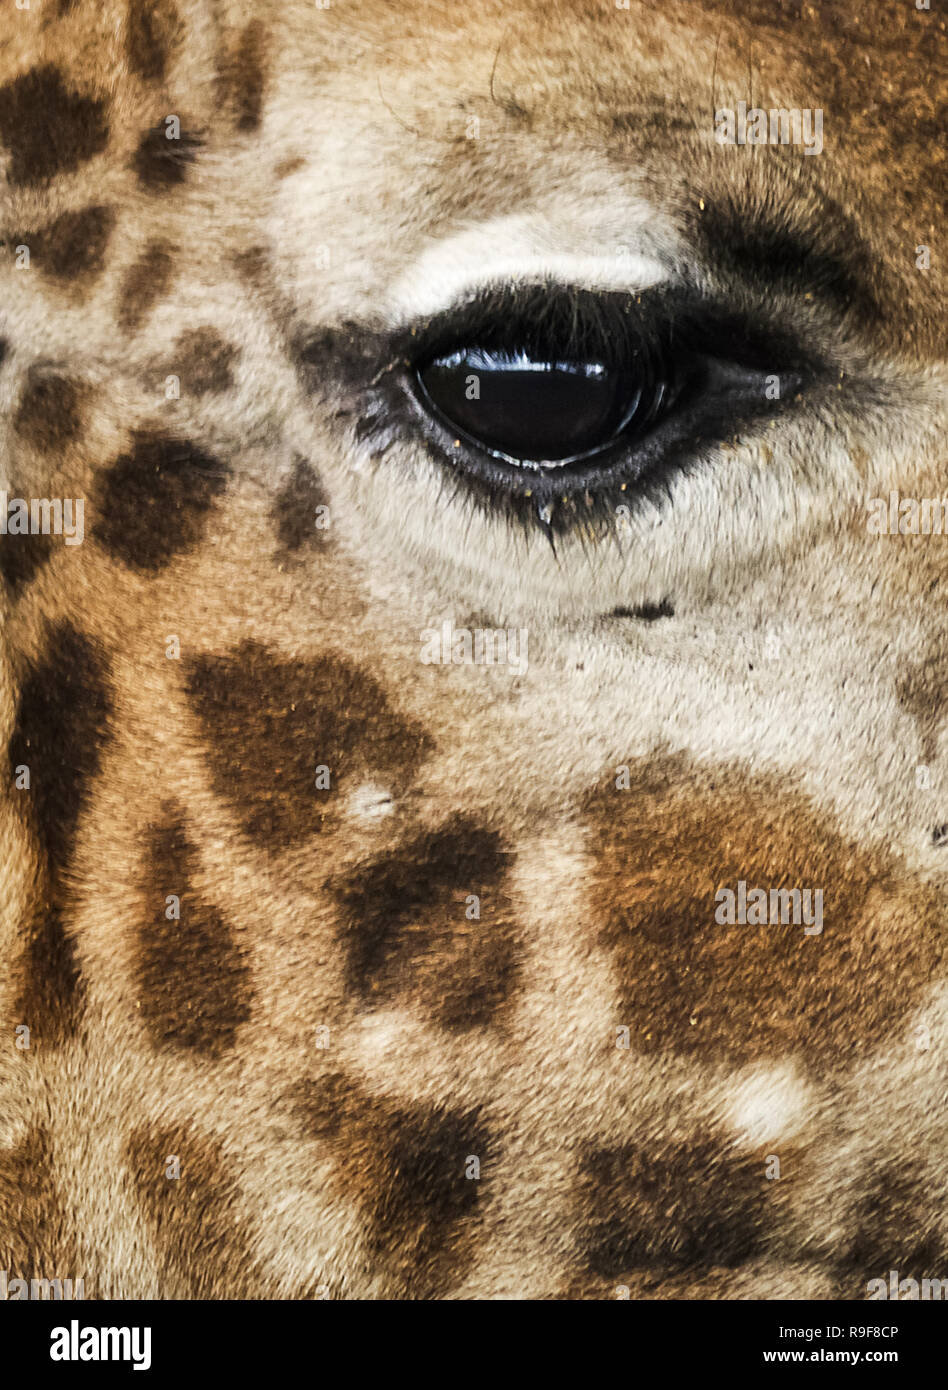 Giraffe in the wild. An animal with a long neck. Wild world of the African savannah - Stock Image